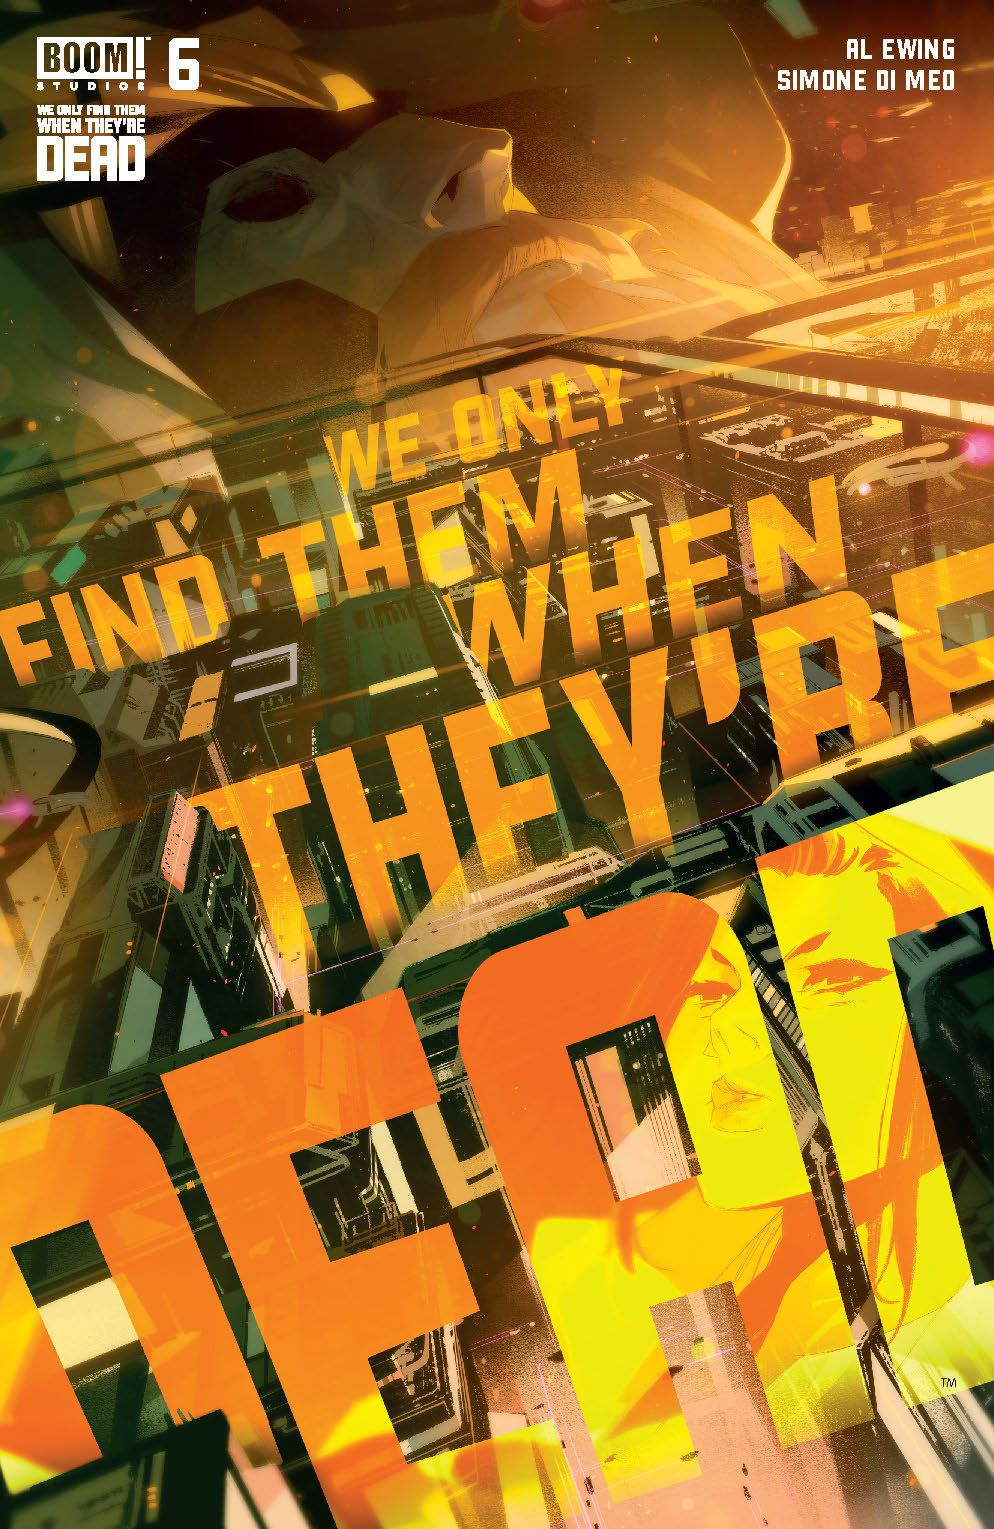 WeOnlyFindThem_006_Cover_A_Main ComicList Previews: WE ONLY FIND THEM WHEN THEY'RE DEAD #6